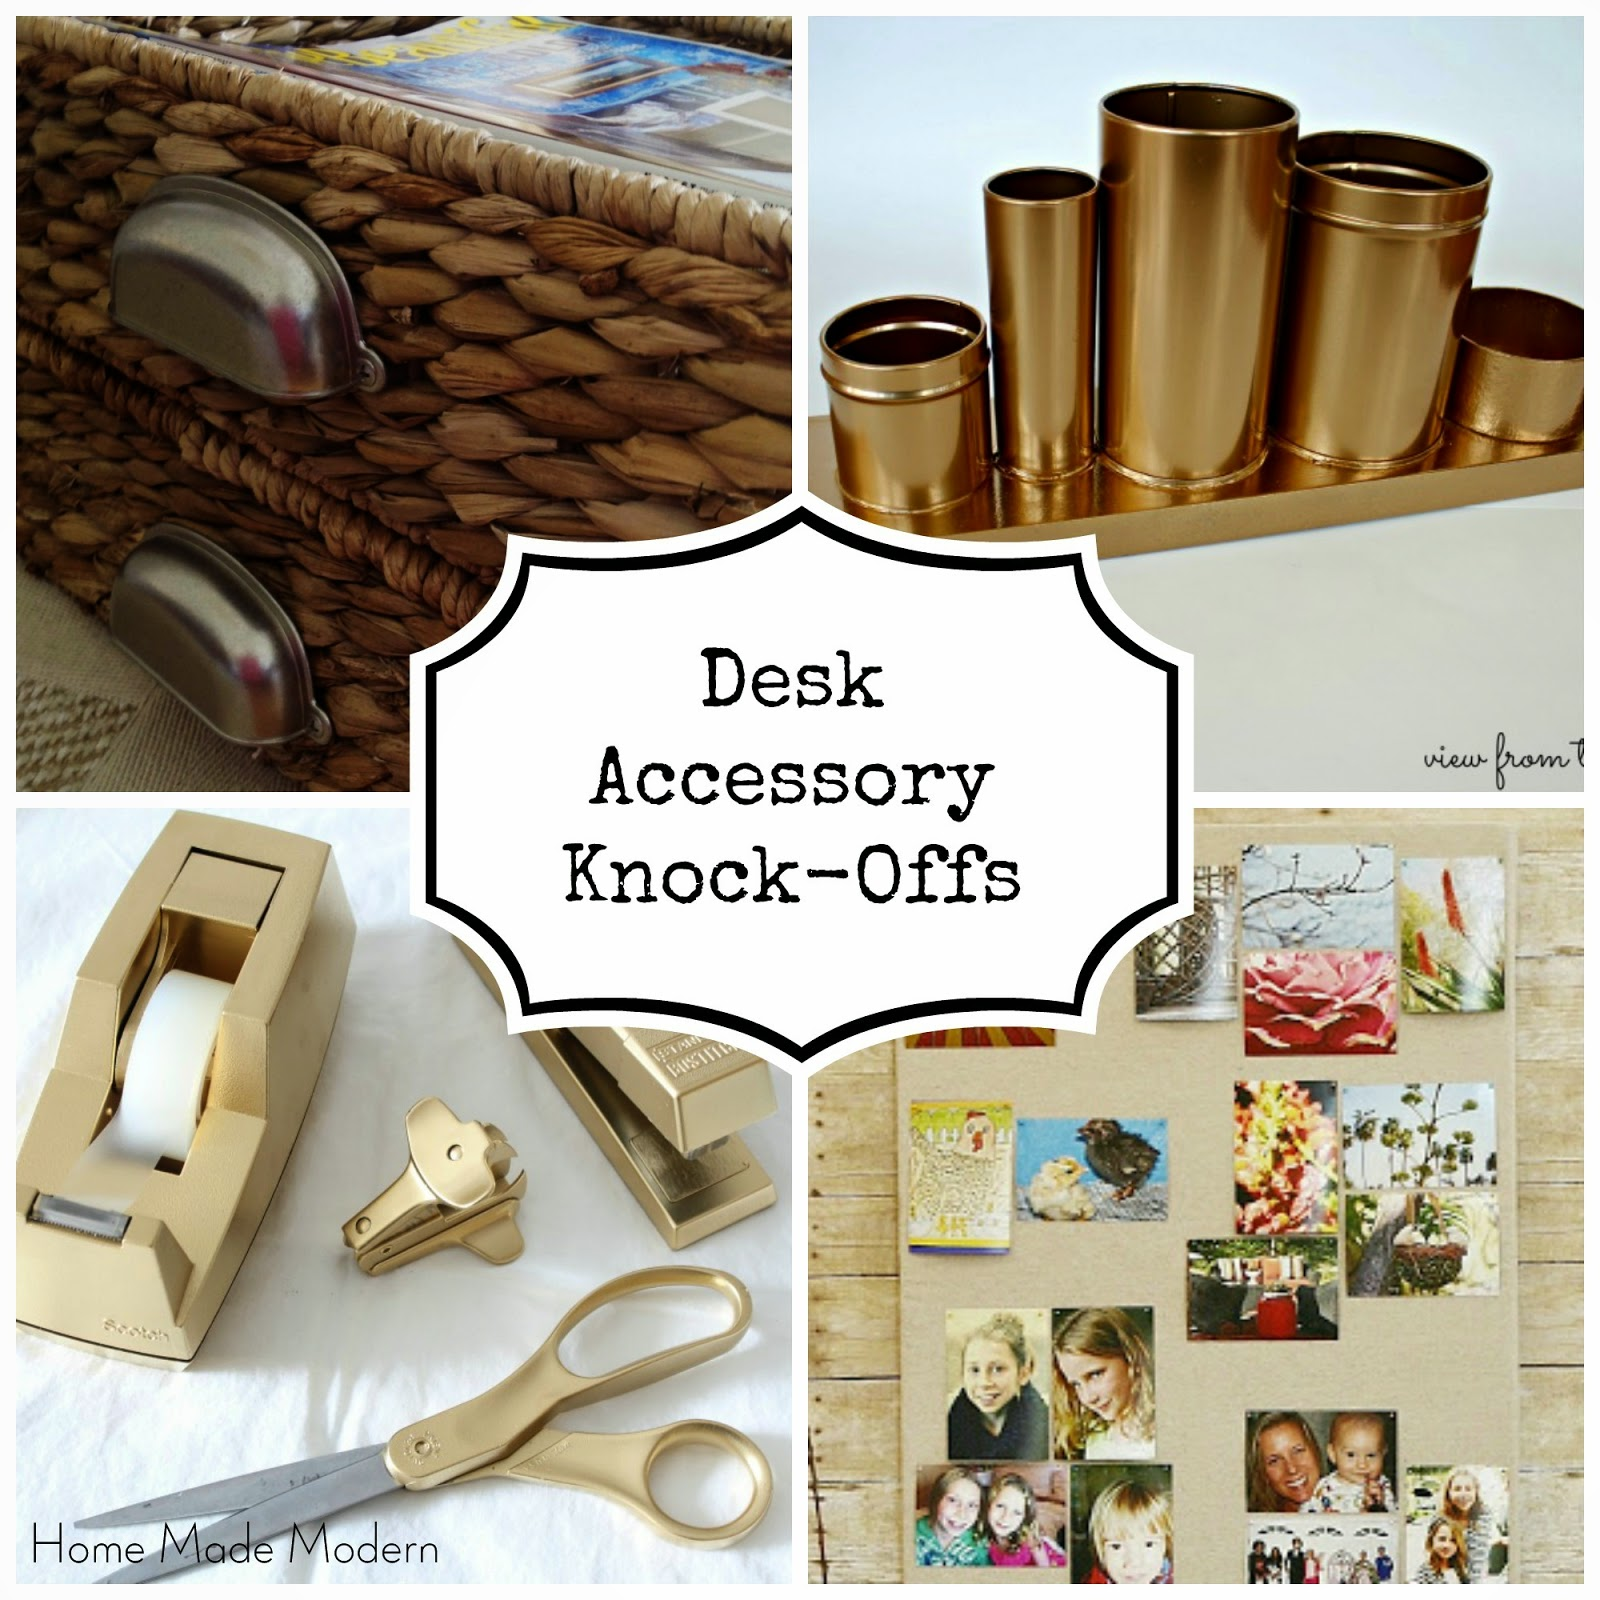 home made modern ultra chic diy desk accessories